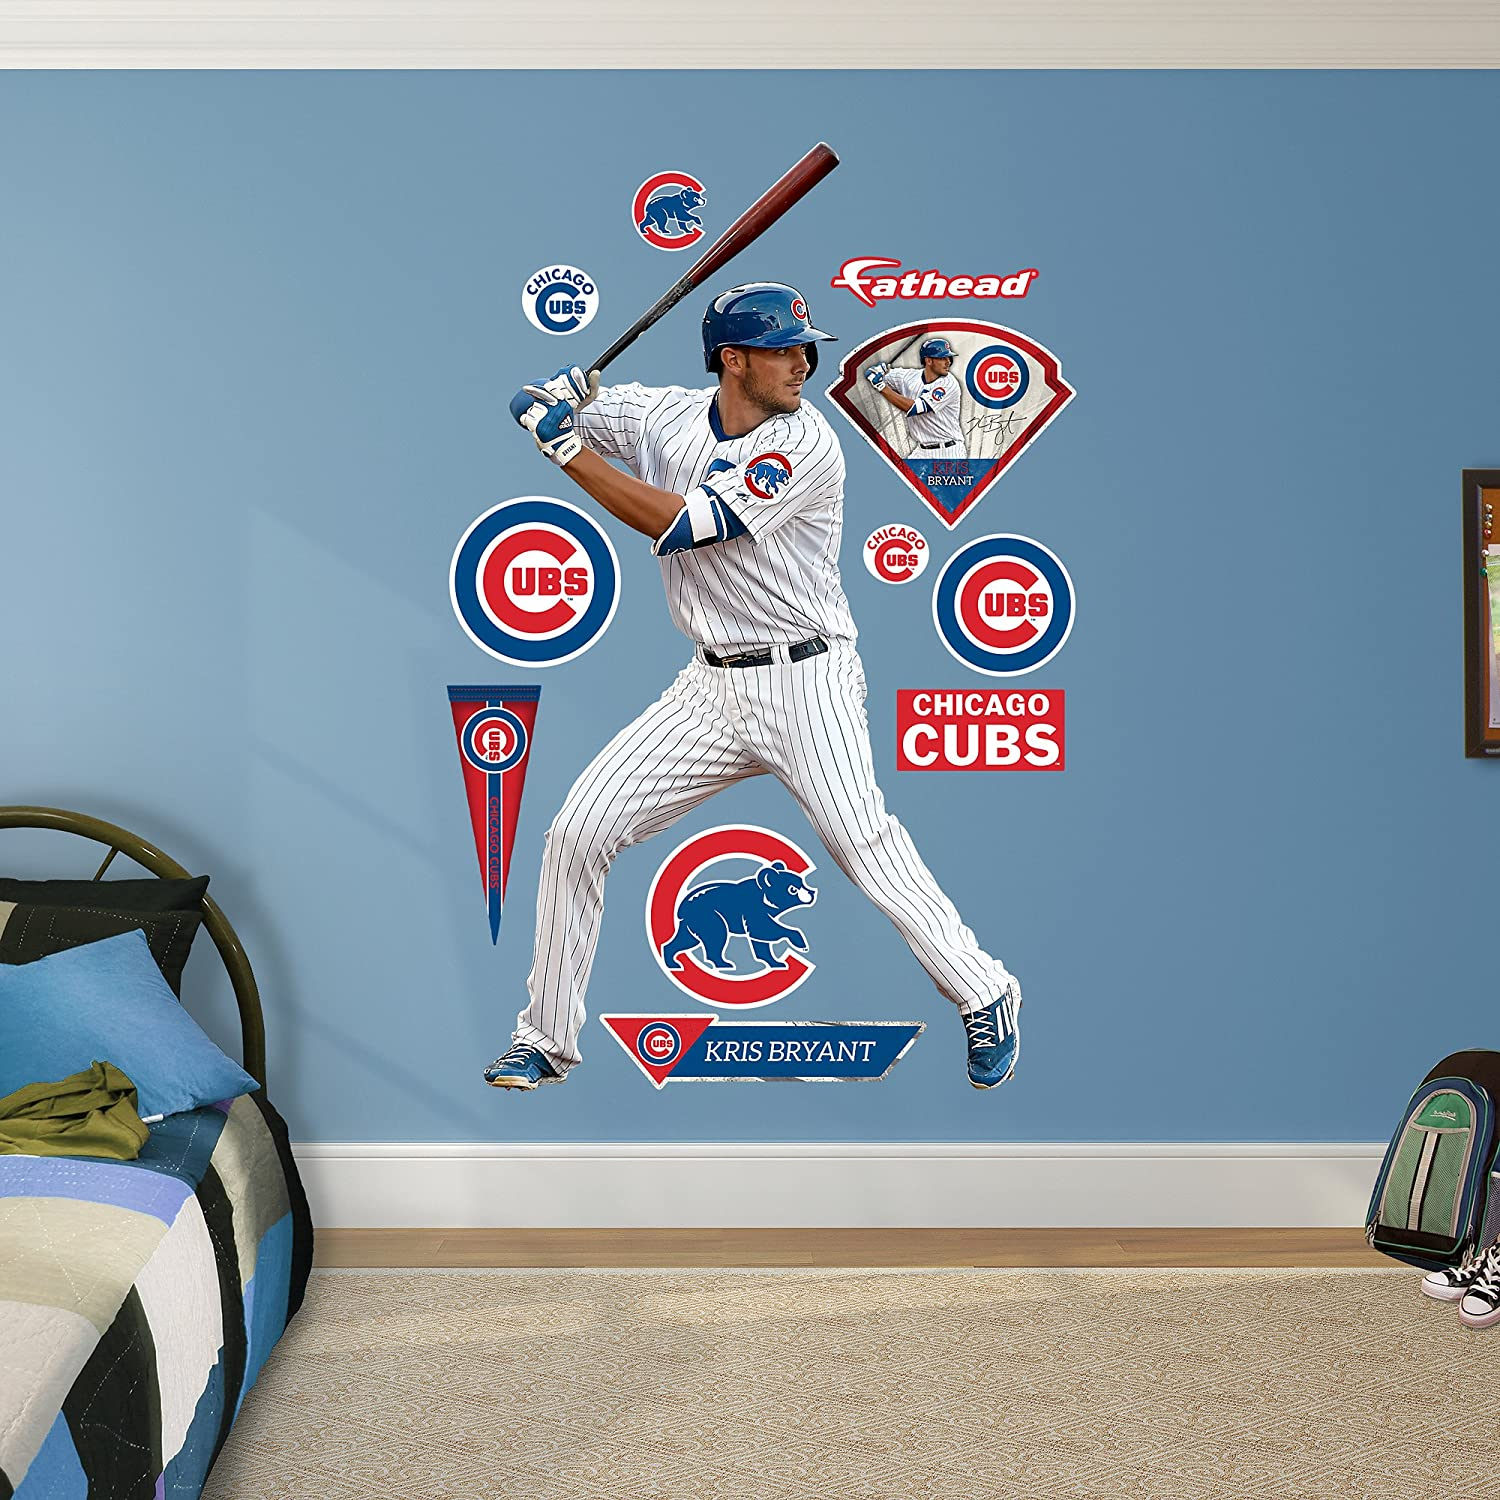 amazon com mlb chicago cubs kris bryant fathead real big decals amazon com mlb chicago cubs kris bryant fathead real big decals one size multicolor sports outdoors